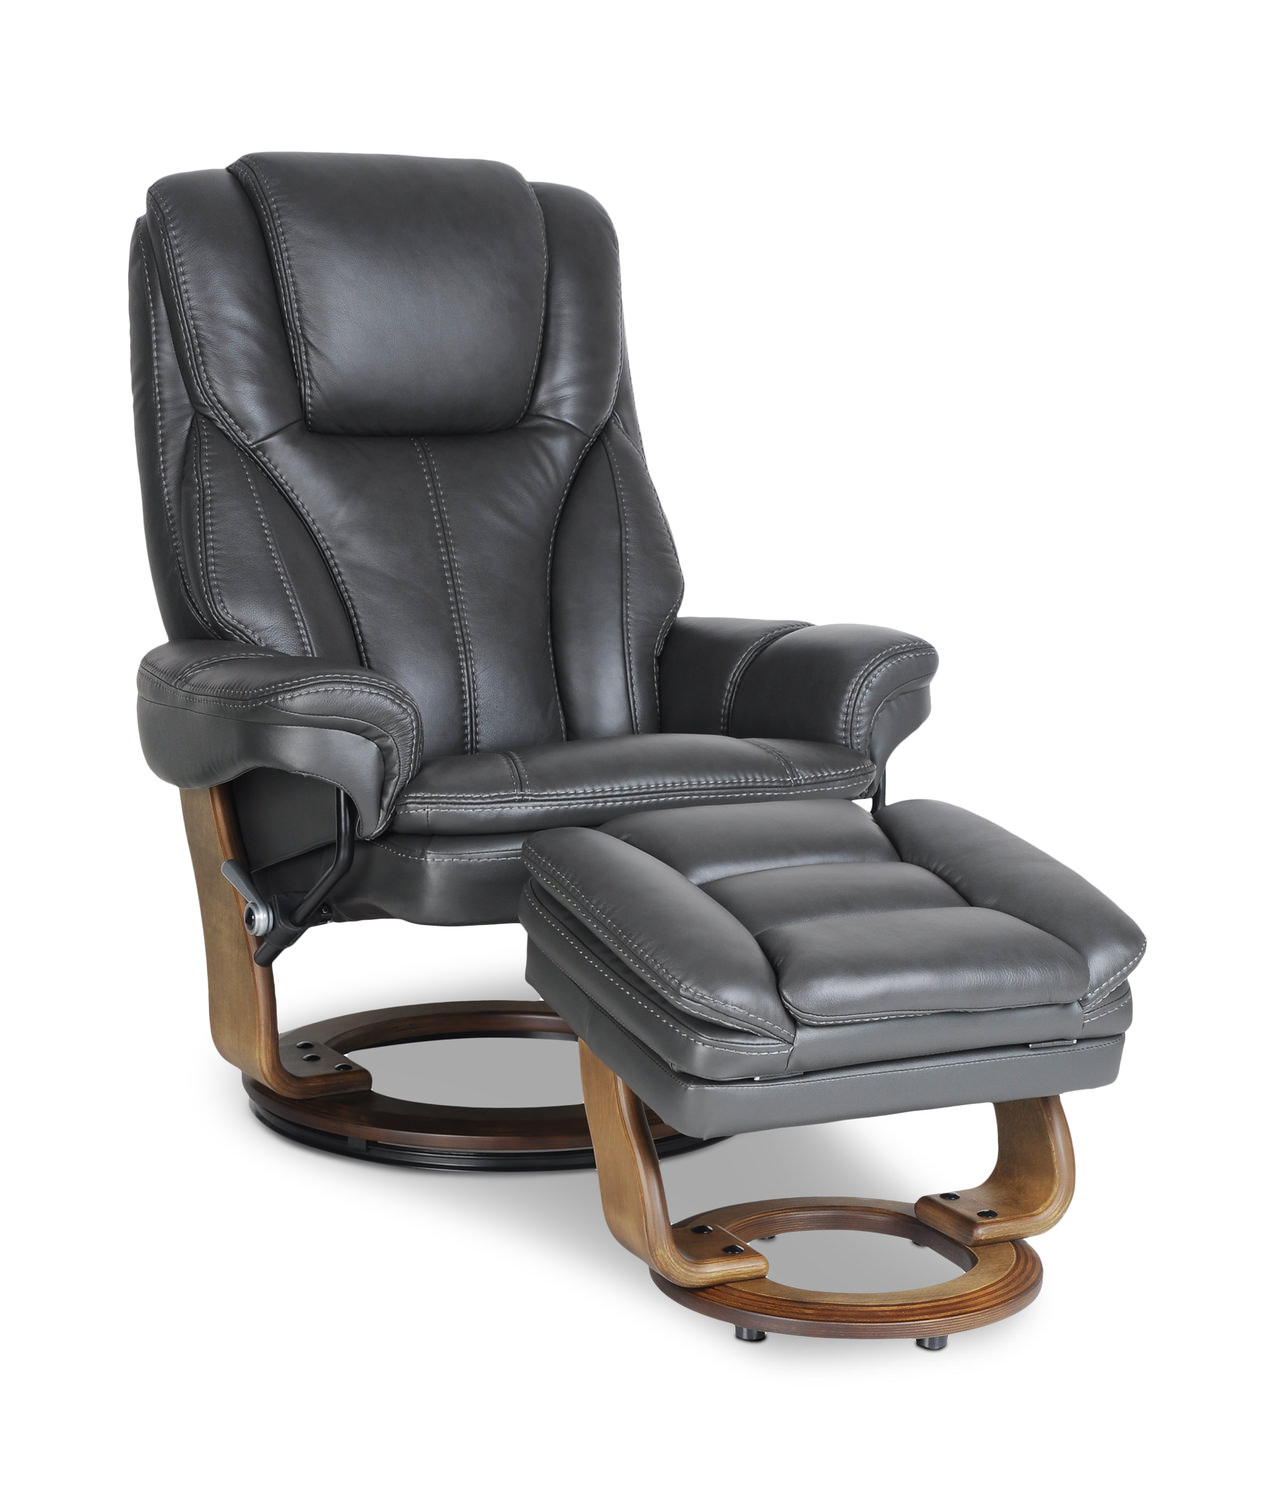 Stupendous Barley Leather Swivel Recliner And Ottoman Ibusinesslaw Wood Chair Design Ideas Ibusinesslaworg